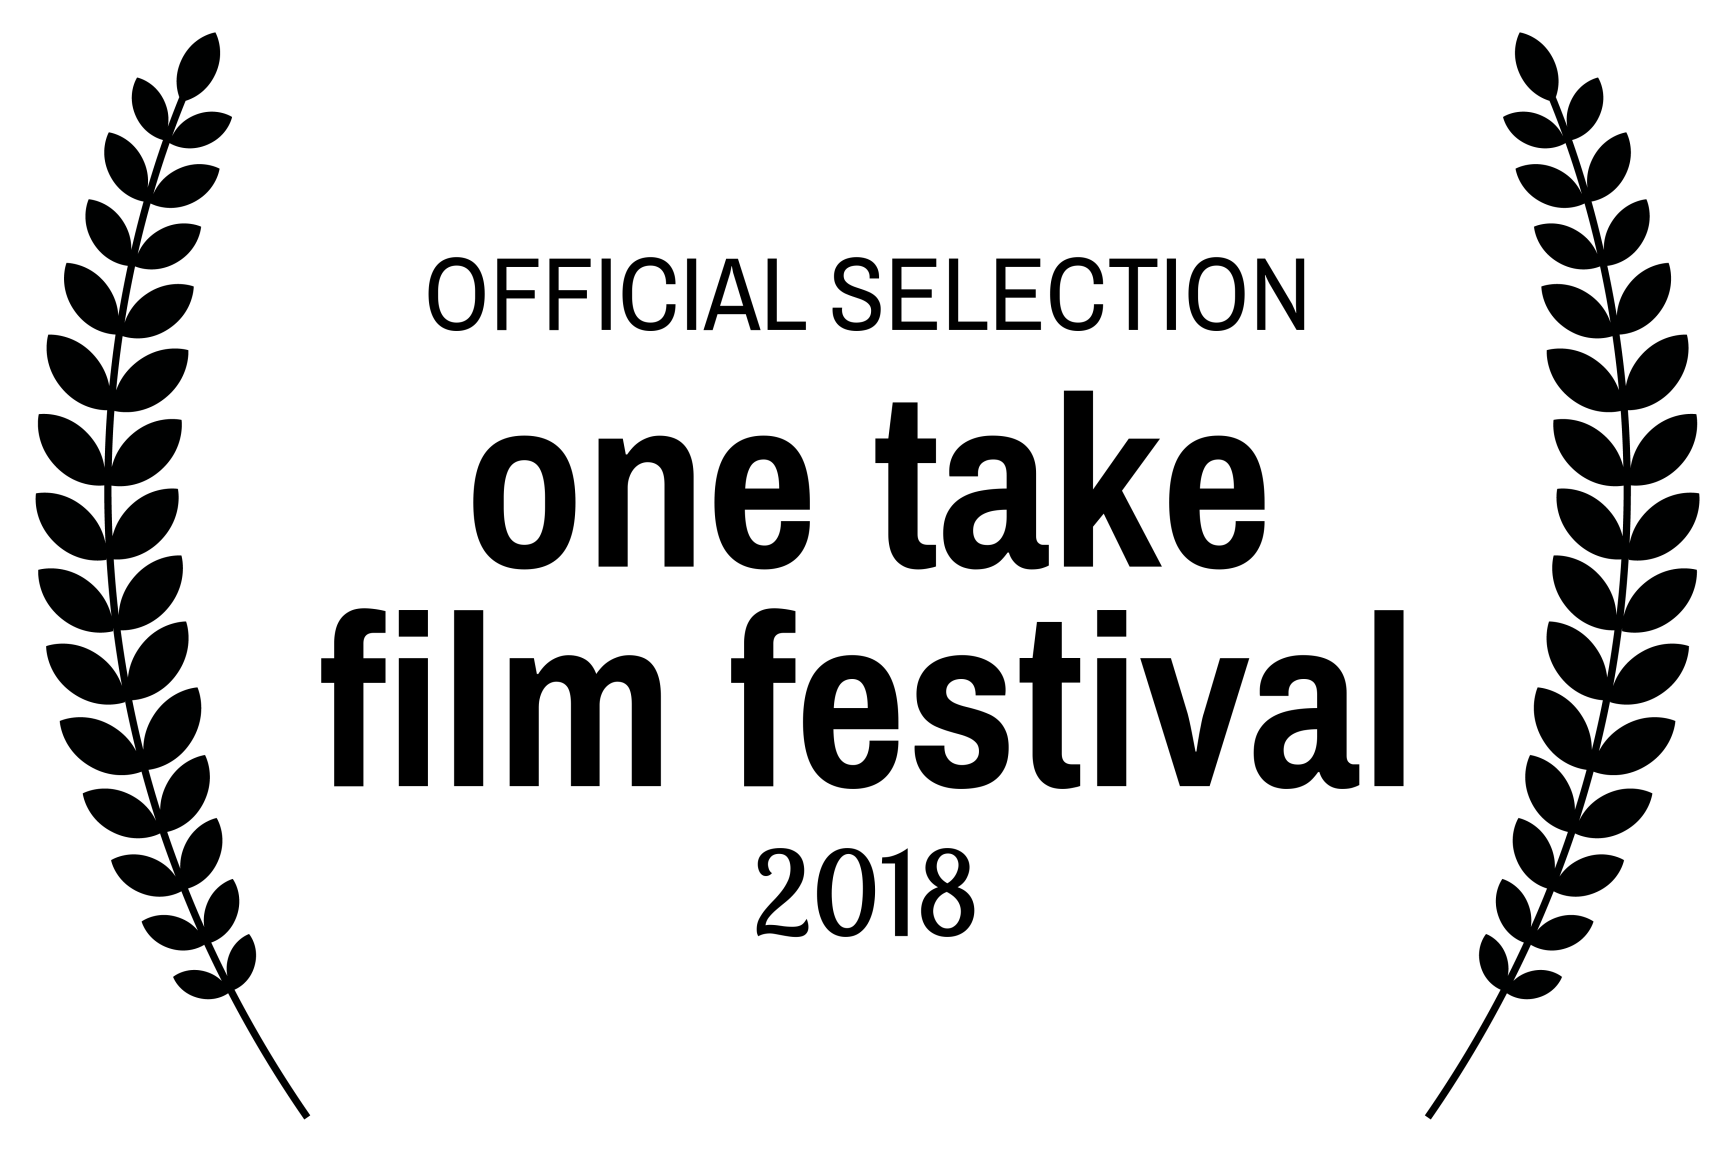 OFFICIAL SELECTION one take film festival 2018 - Lavenders Blue gets first festival selection in Zagreb